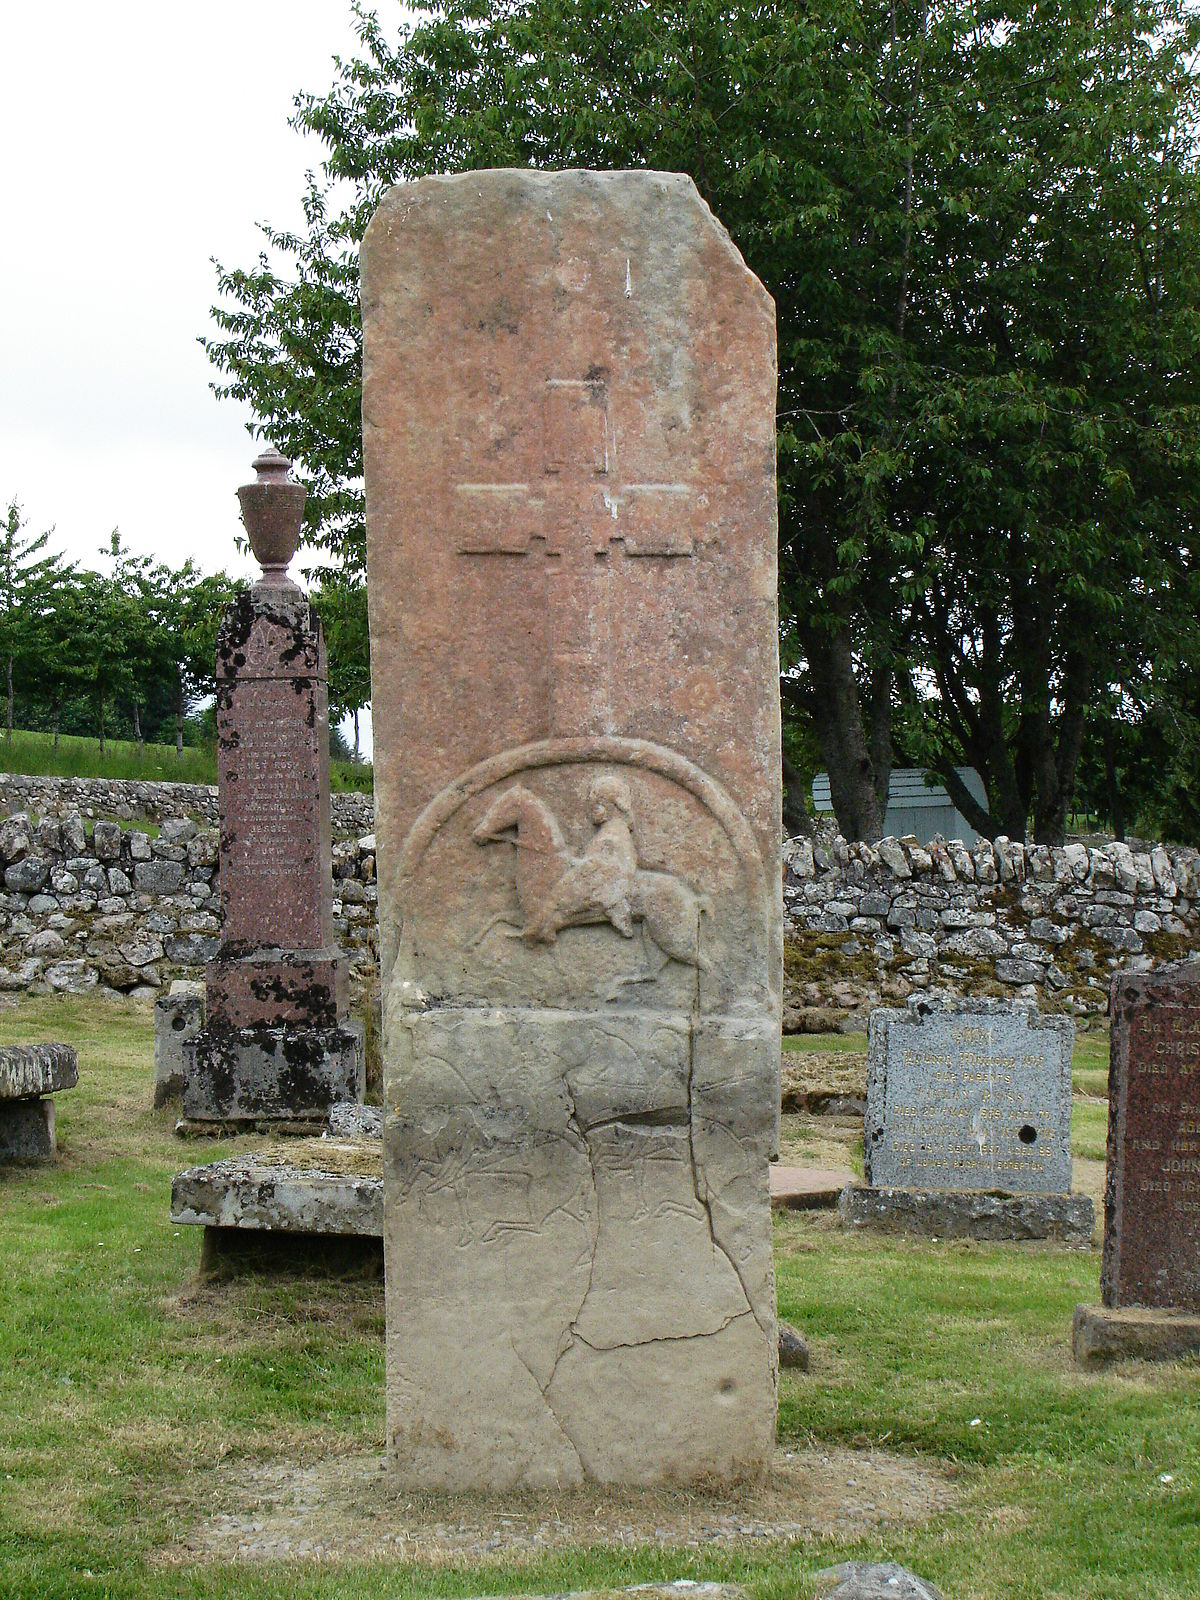 edderton cross slab - wikipedia